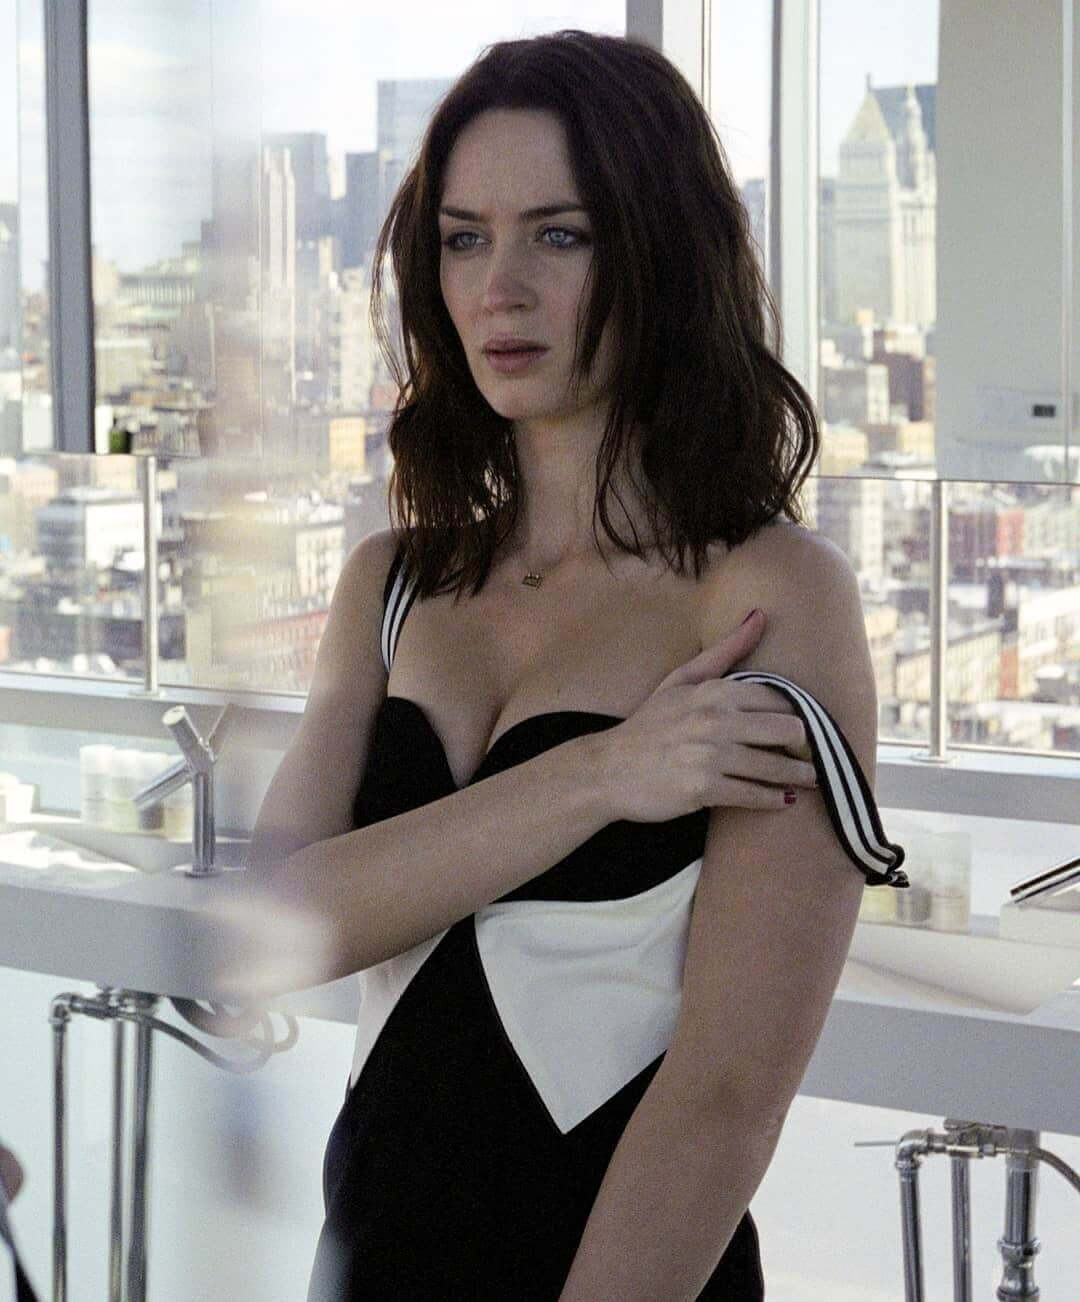 Emily Blunt hot cleavage pic